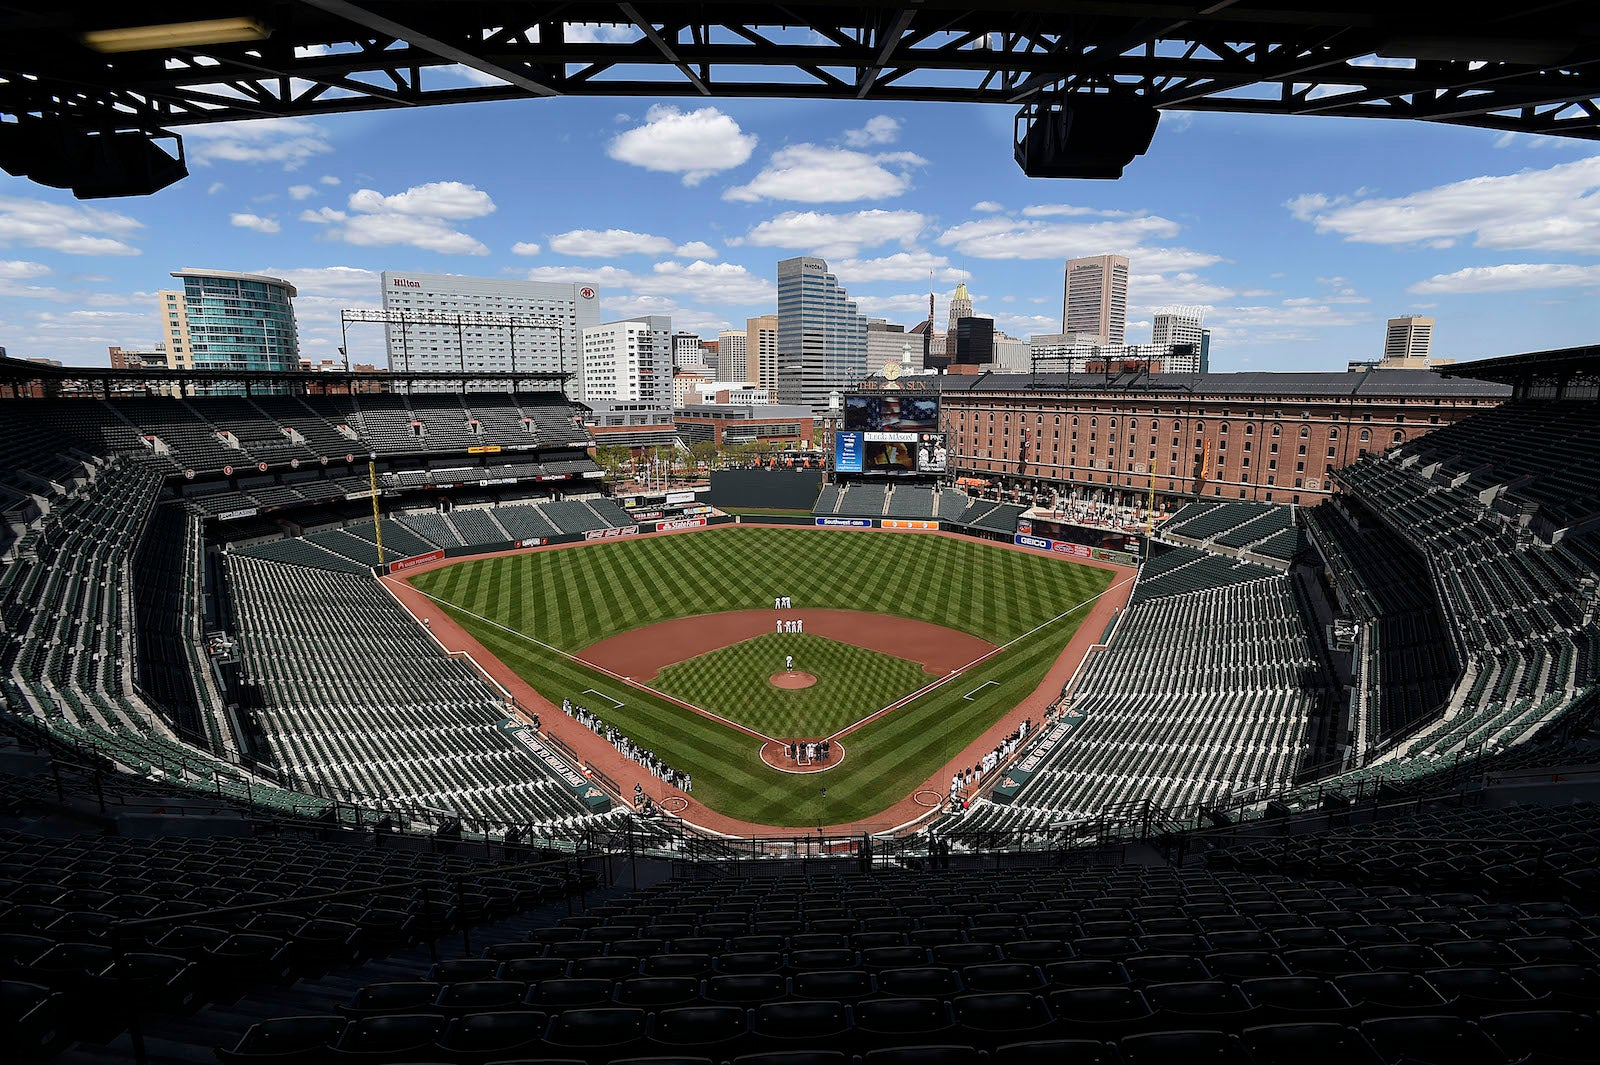 Photos An Empty Stadium Hosts Mlb Baseball Game Gizmodo